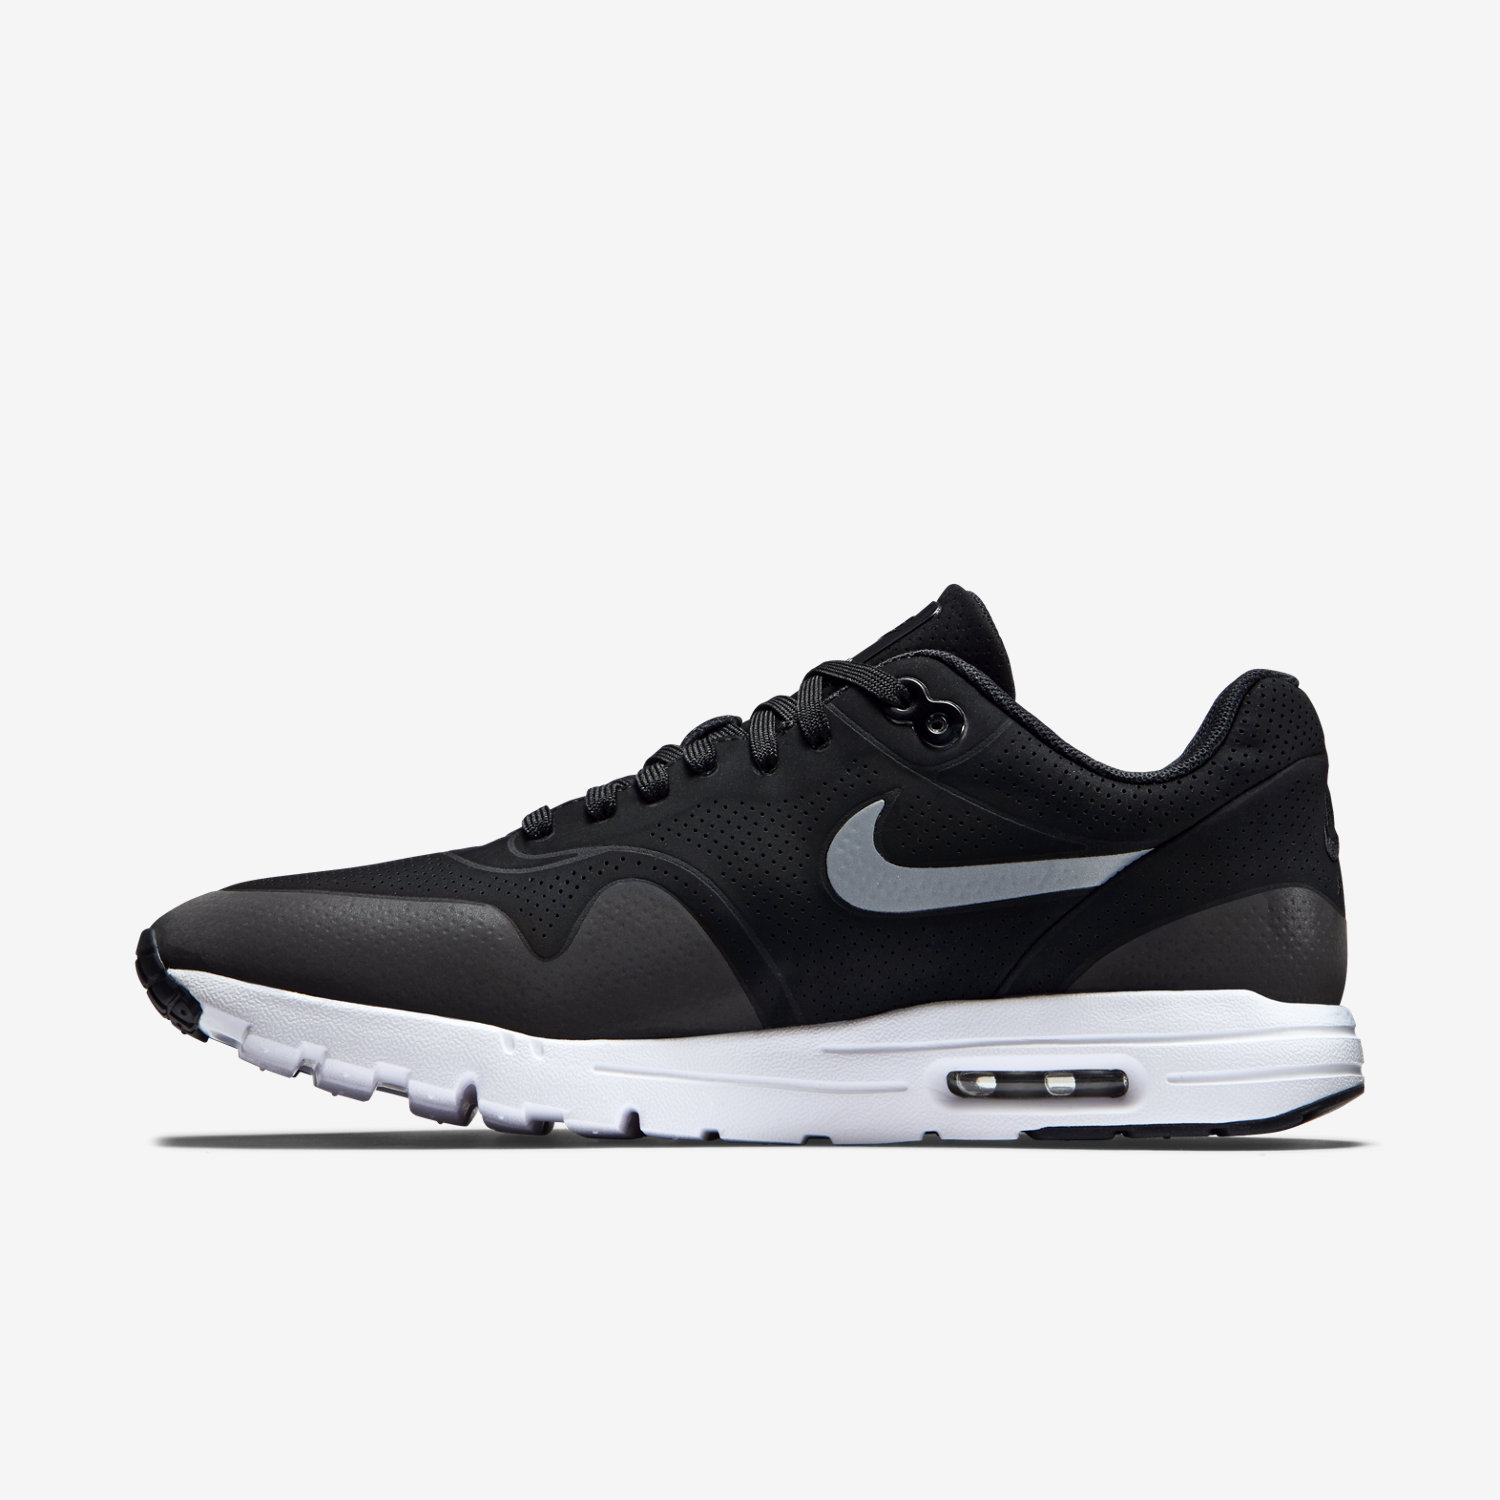 nike air max 1 ultra moire womens mint extreme. Black Bedroom Furniture Sets. Home Design Ideas